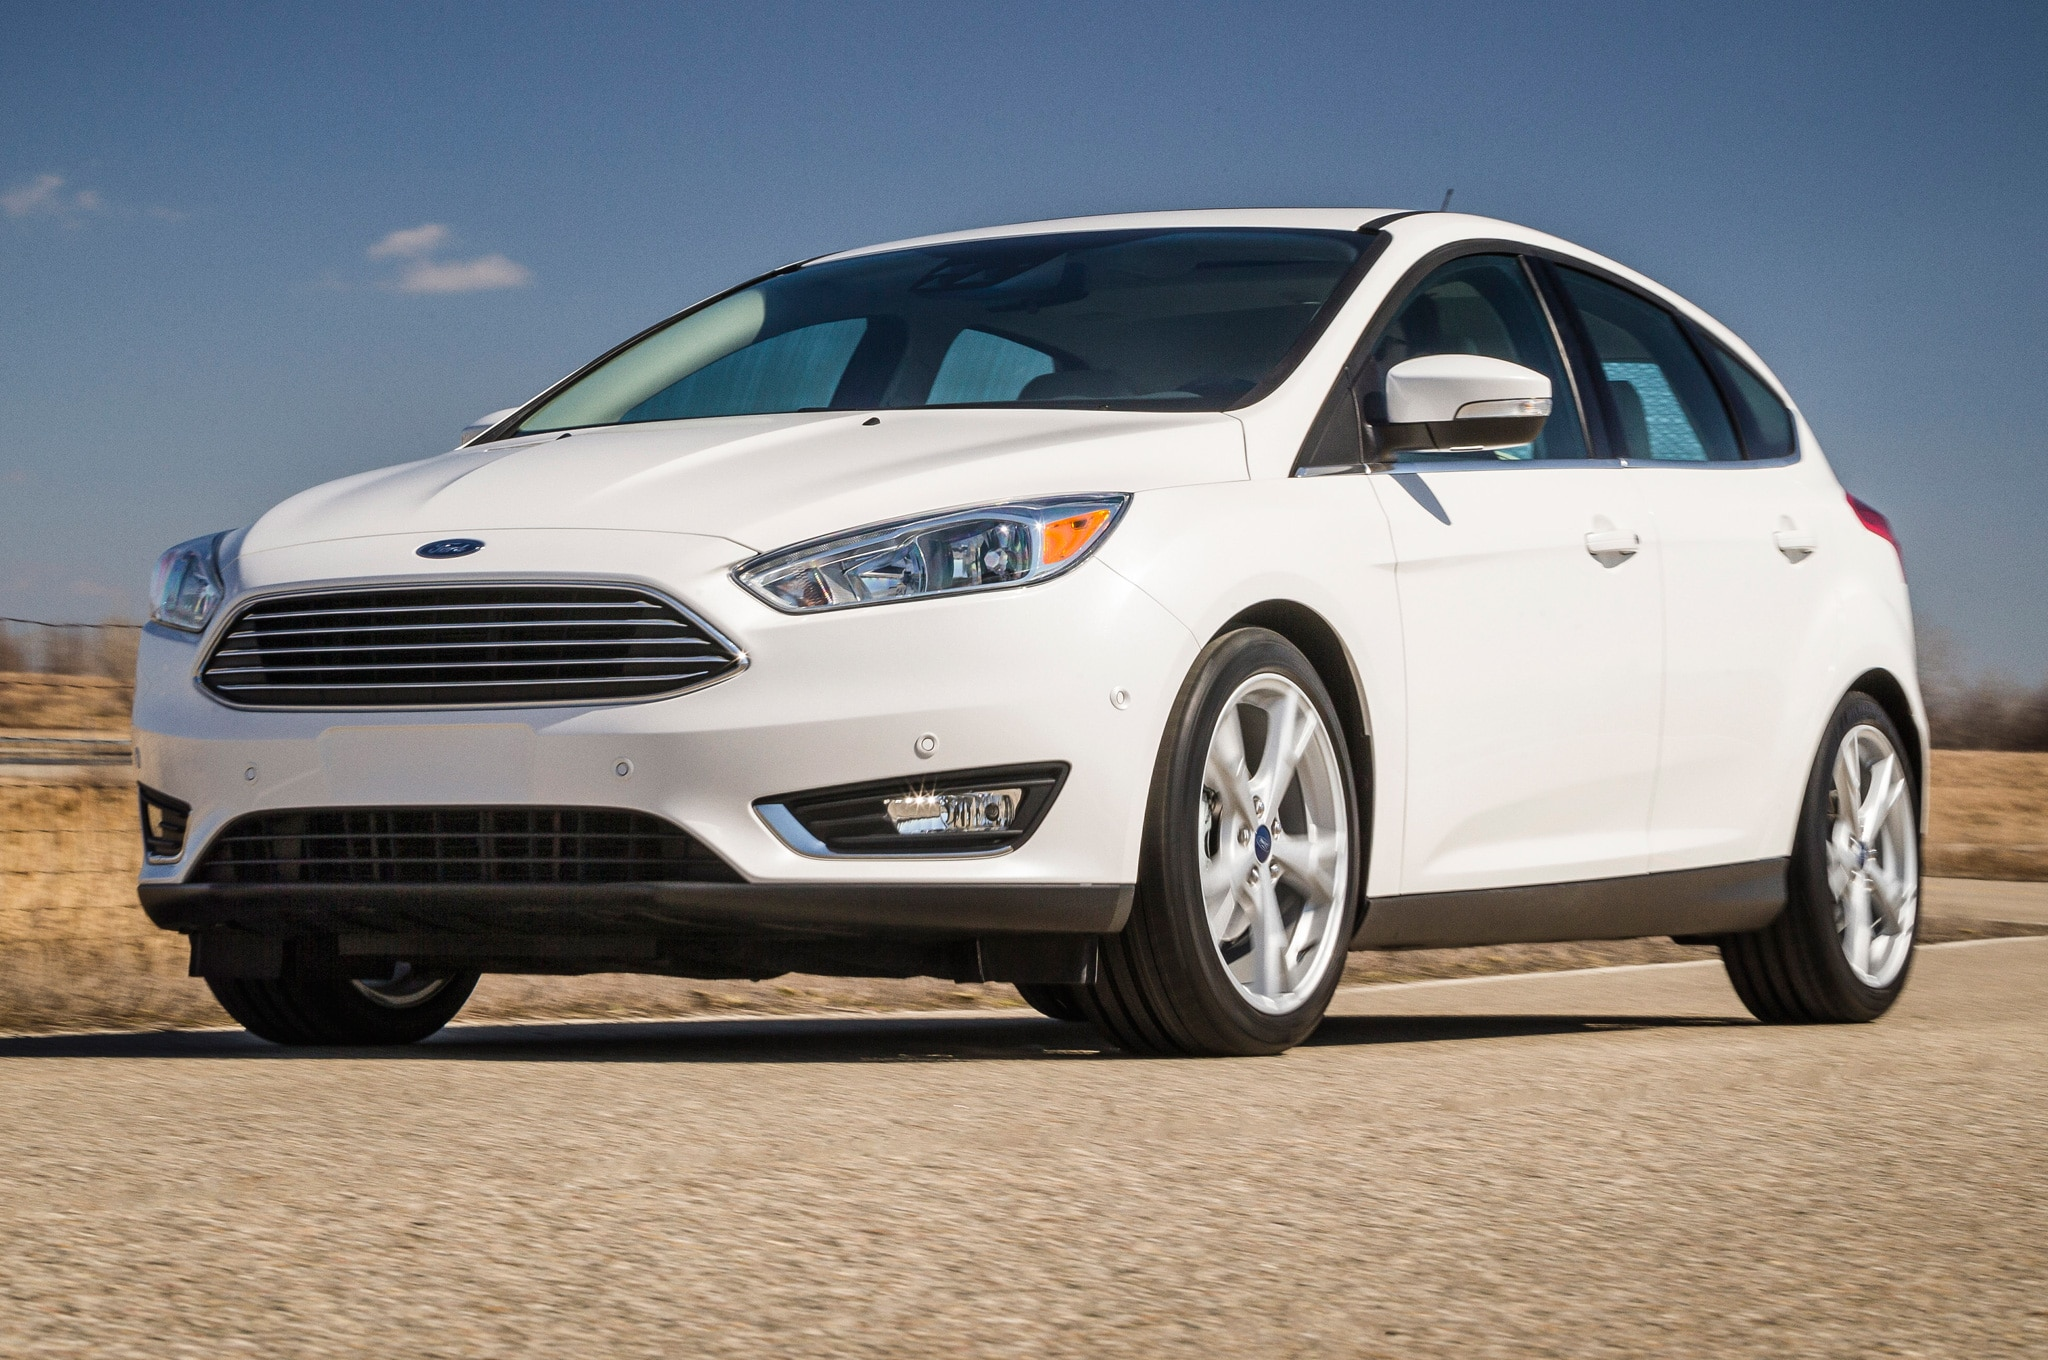 2015 ford focus hatchback front view on street1 - 2015 Ford Focus St White